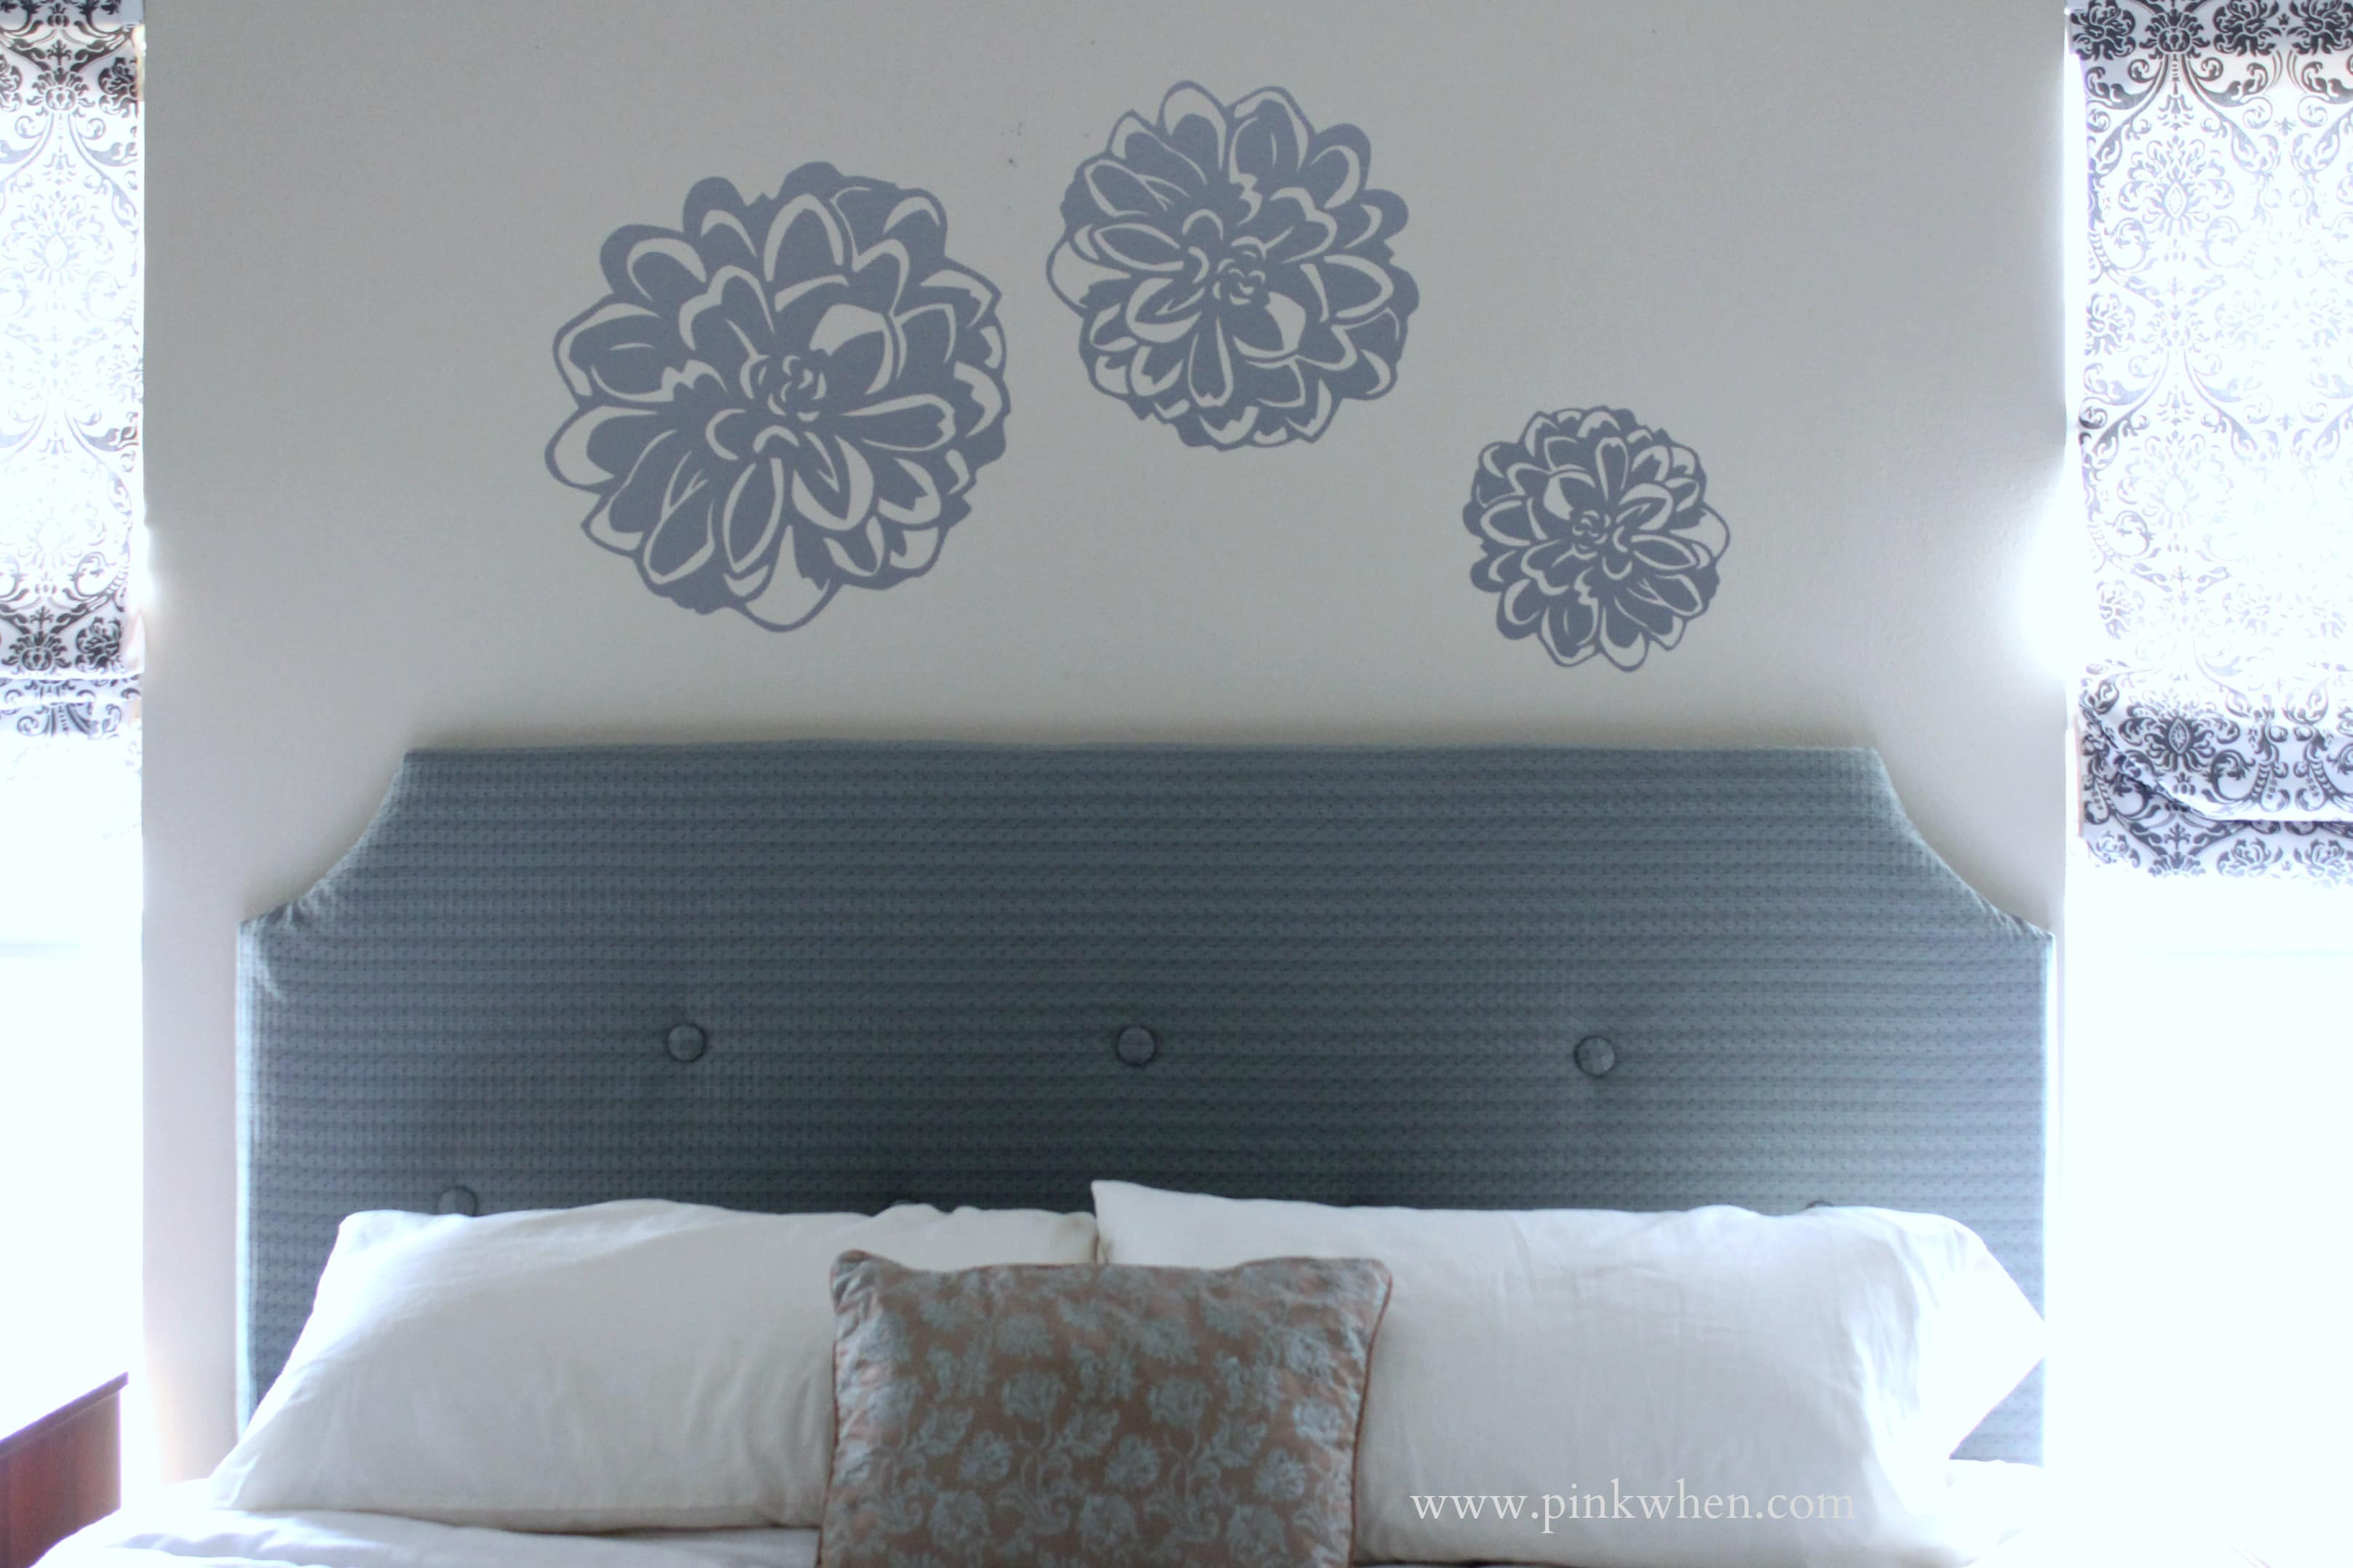 DIY Tufted Headboard for under 0 via PinkWhen.com 1